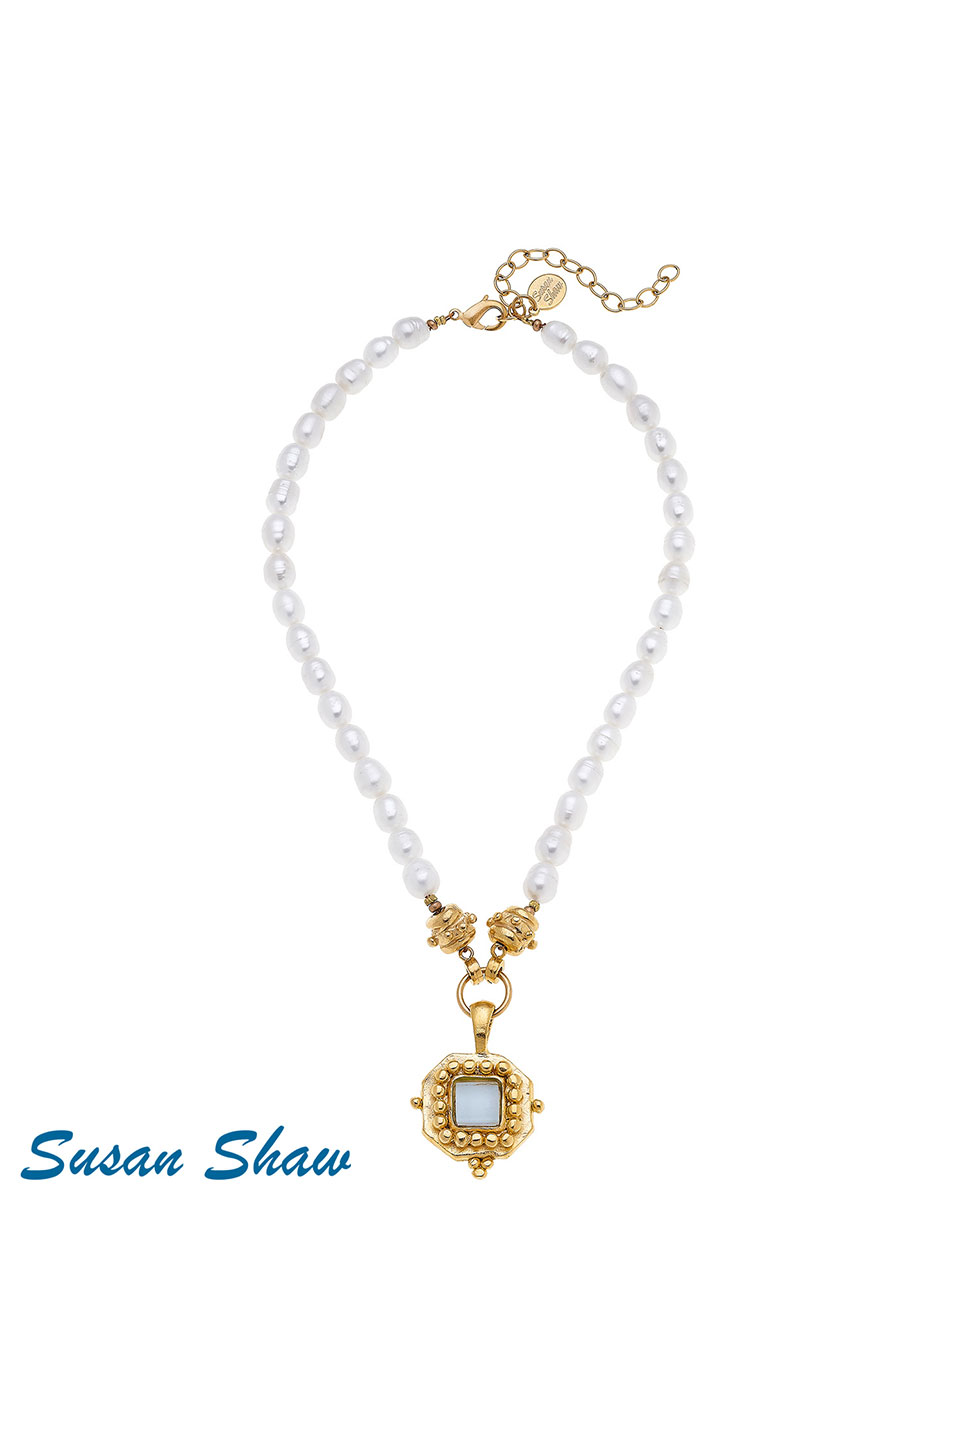 Susan Shaw Handcast Gold Square with White French Glass on Genuine Pearl Necklace